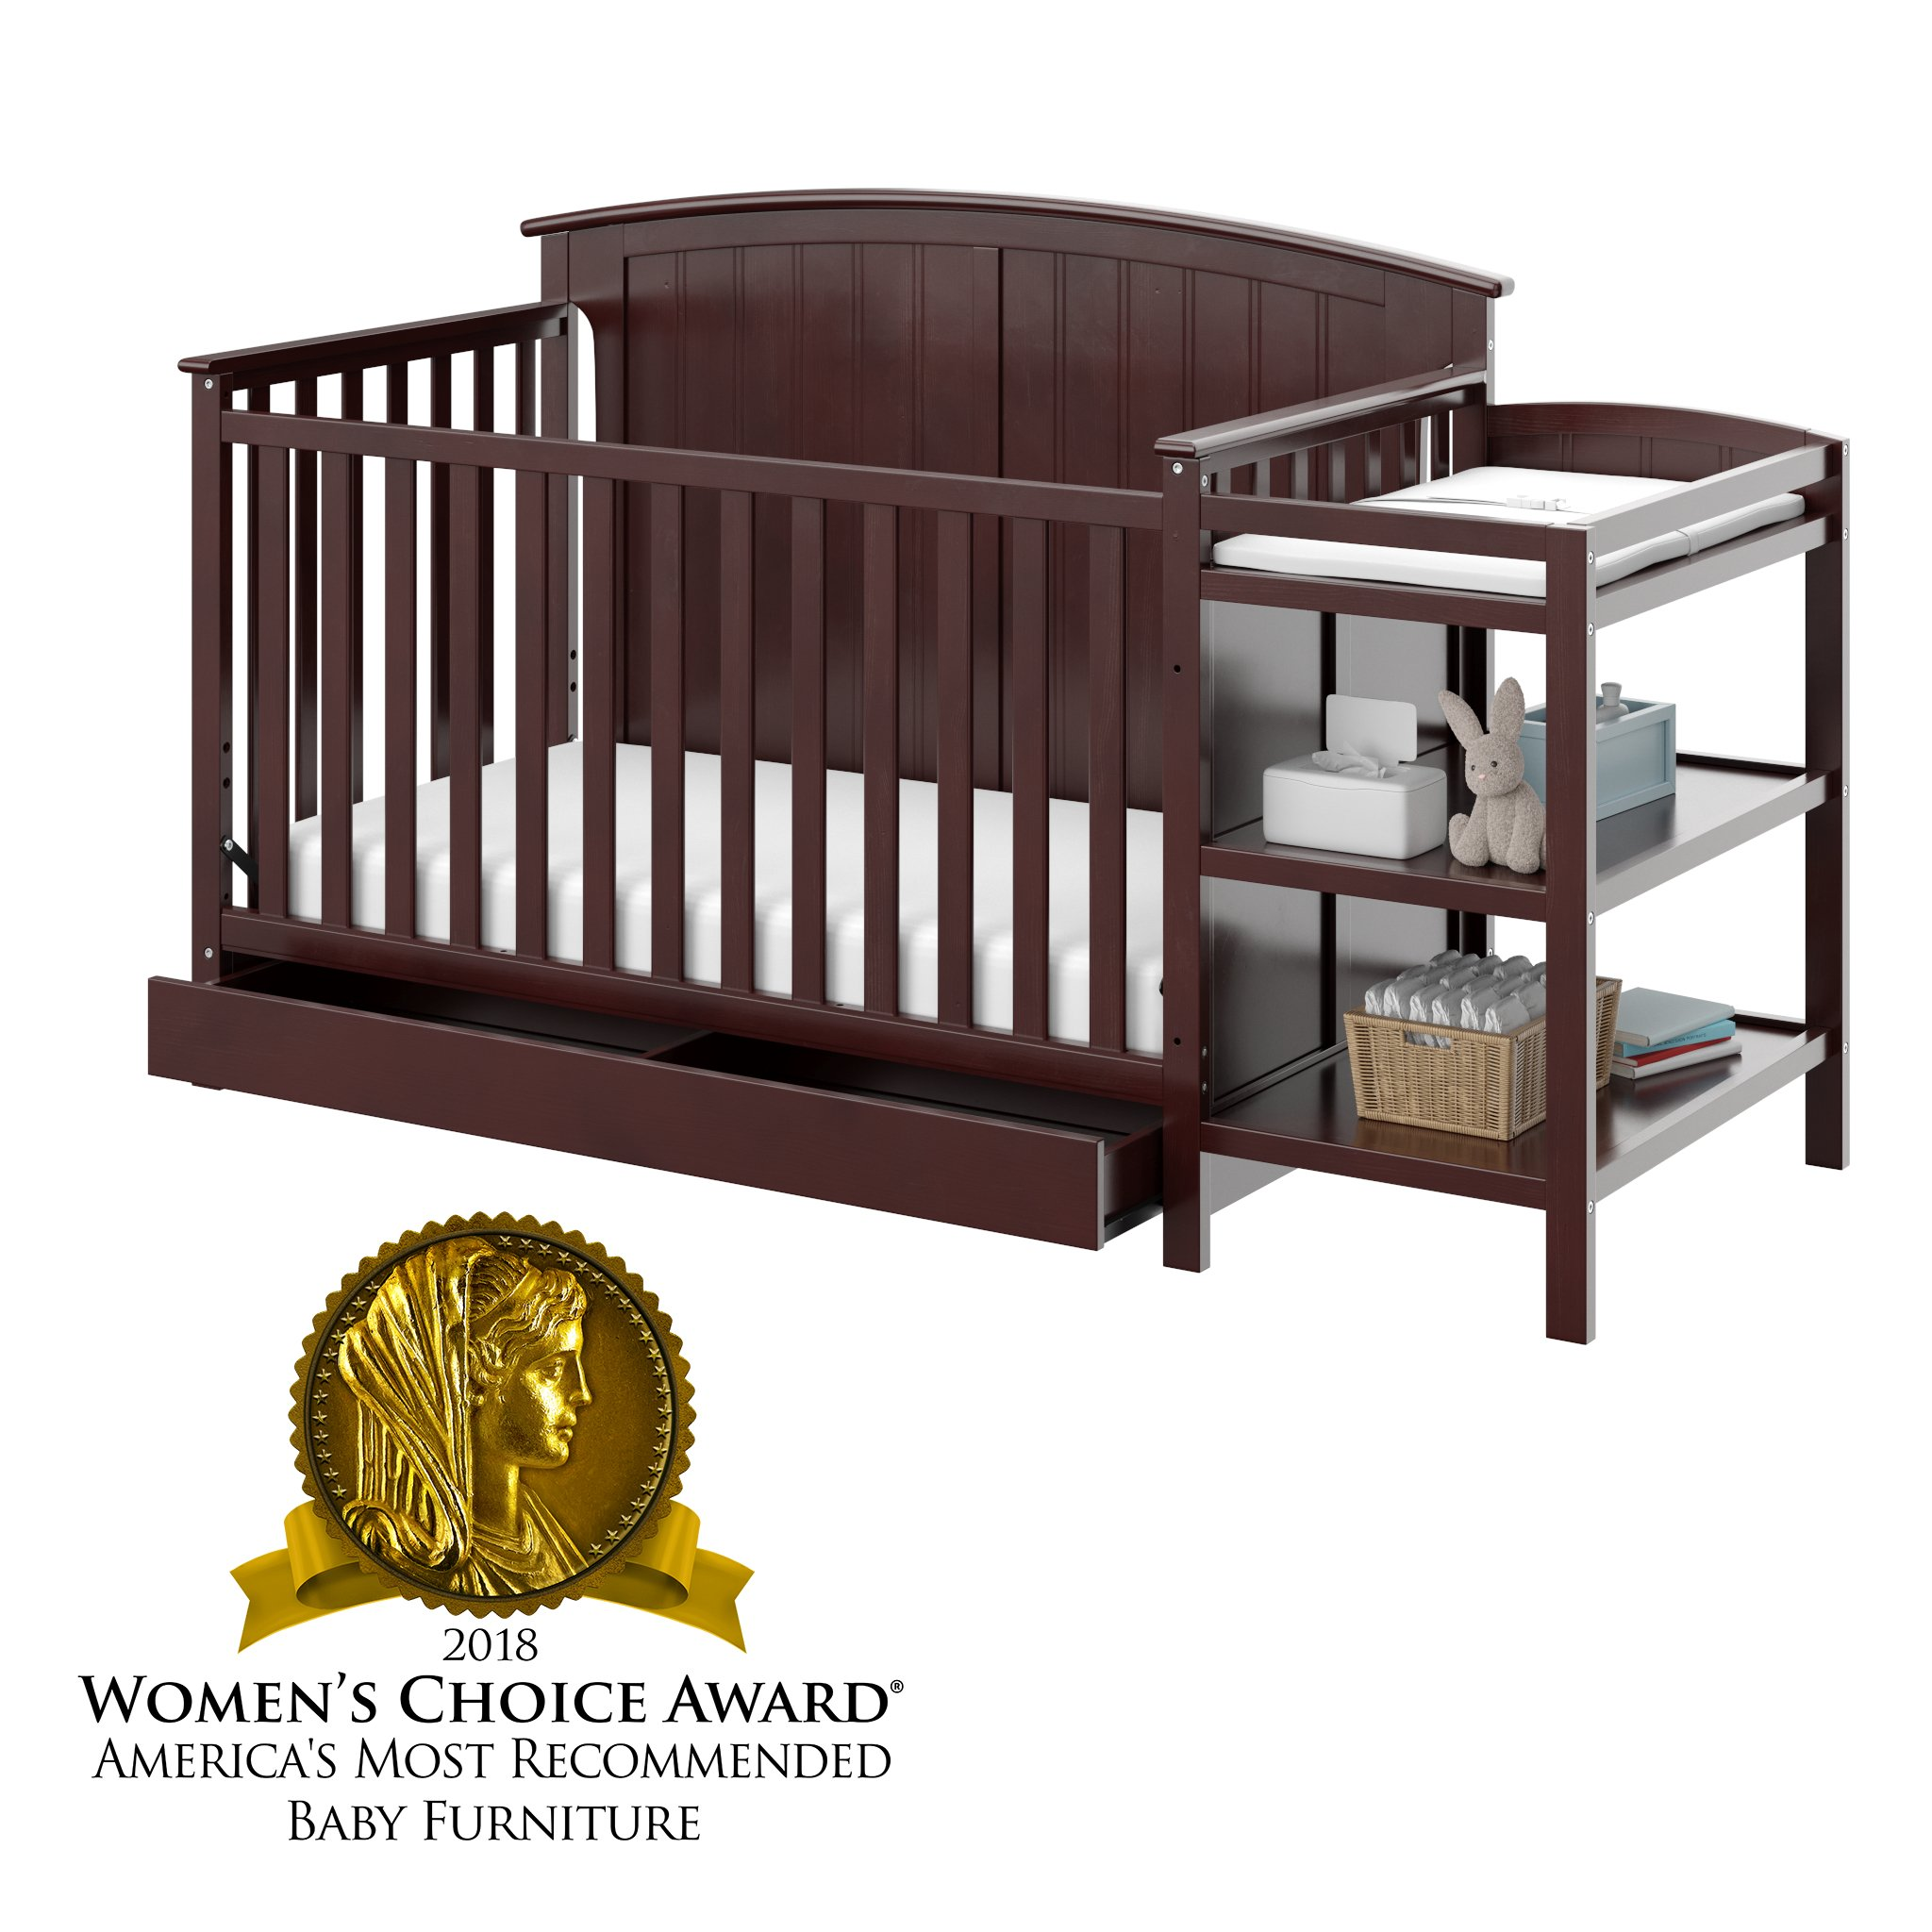 Storkcraft Steveston 4-in-1 Convertible Crib and Changer with Drawer, Espresso